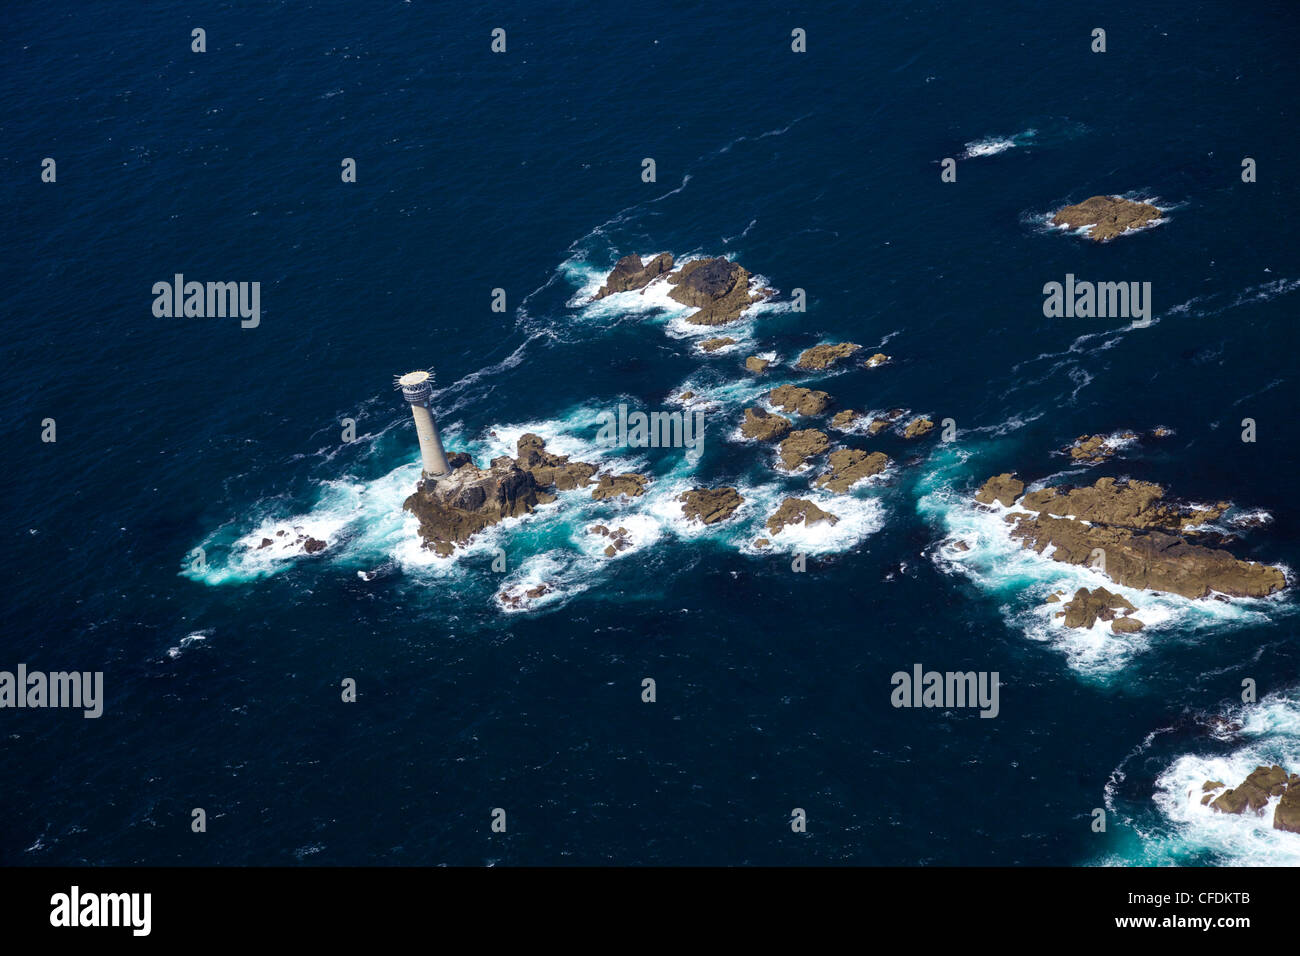 Foto aerea di Longships Lighthouse e Lands End Penisola, West Penwith, Cornwall, England, Regno Unito, Europa Immagini Stock